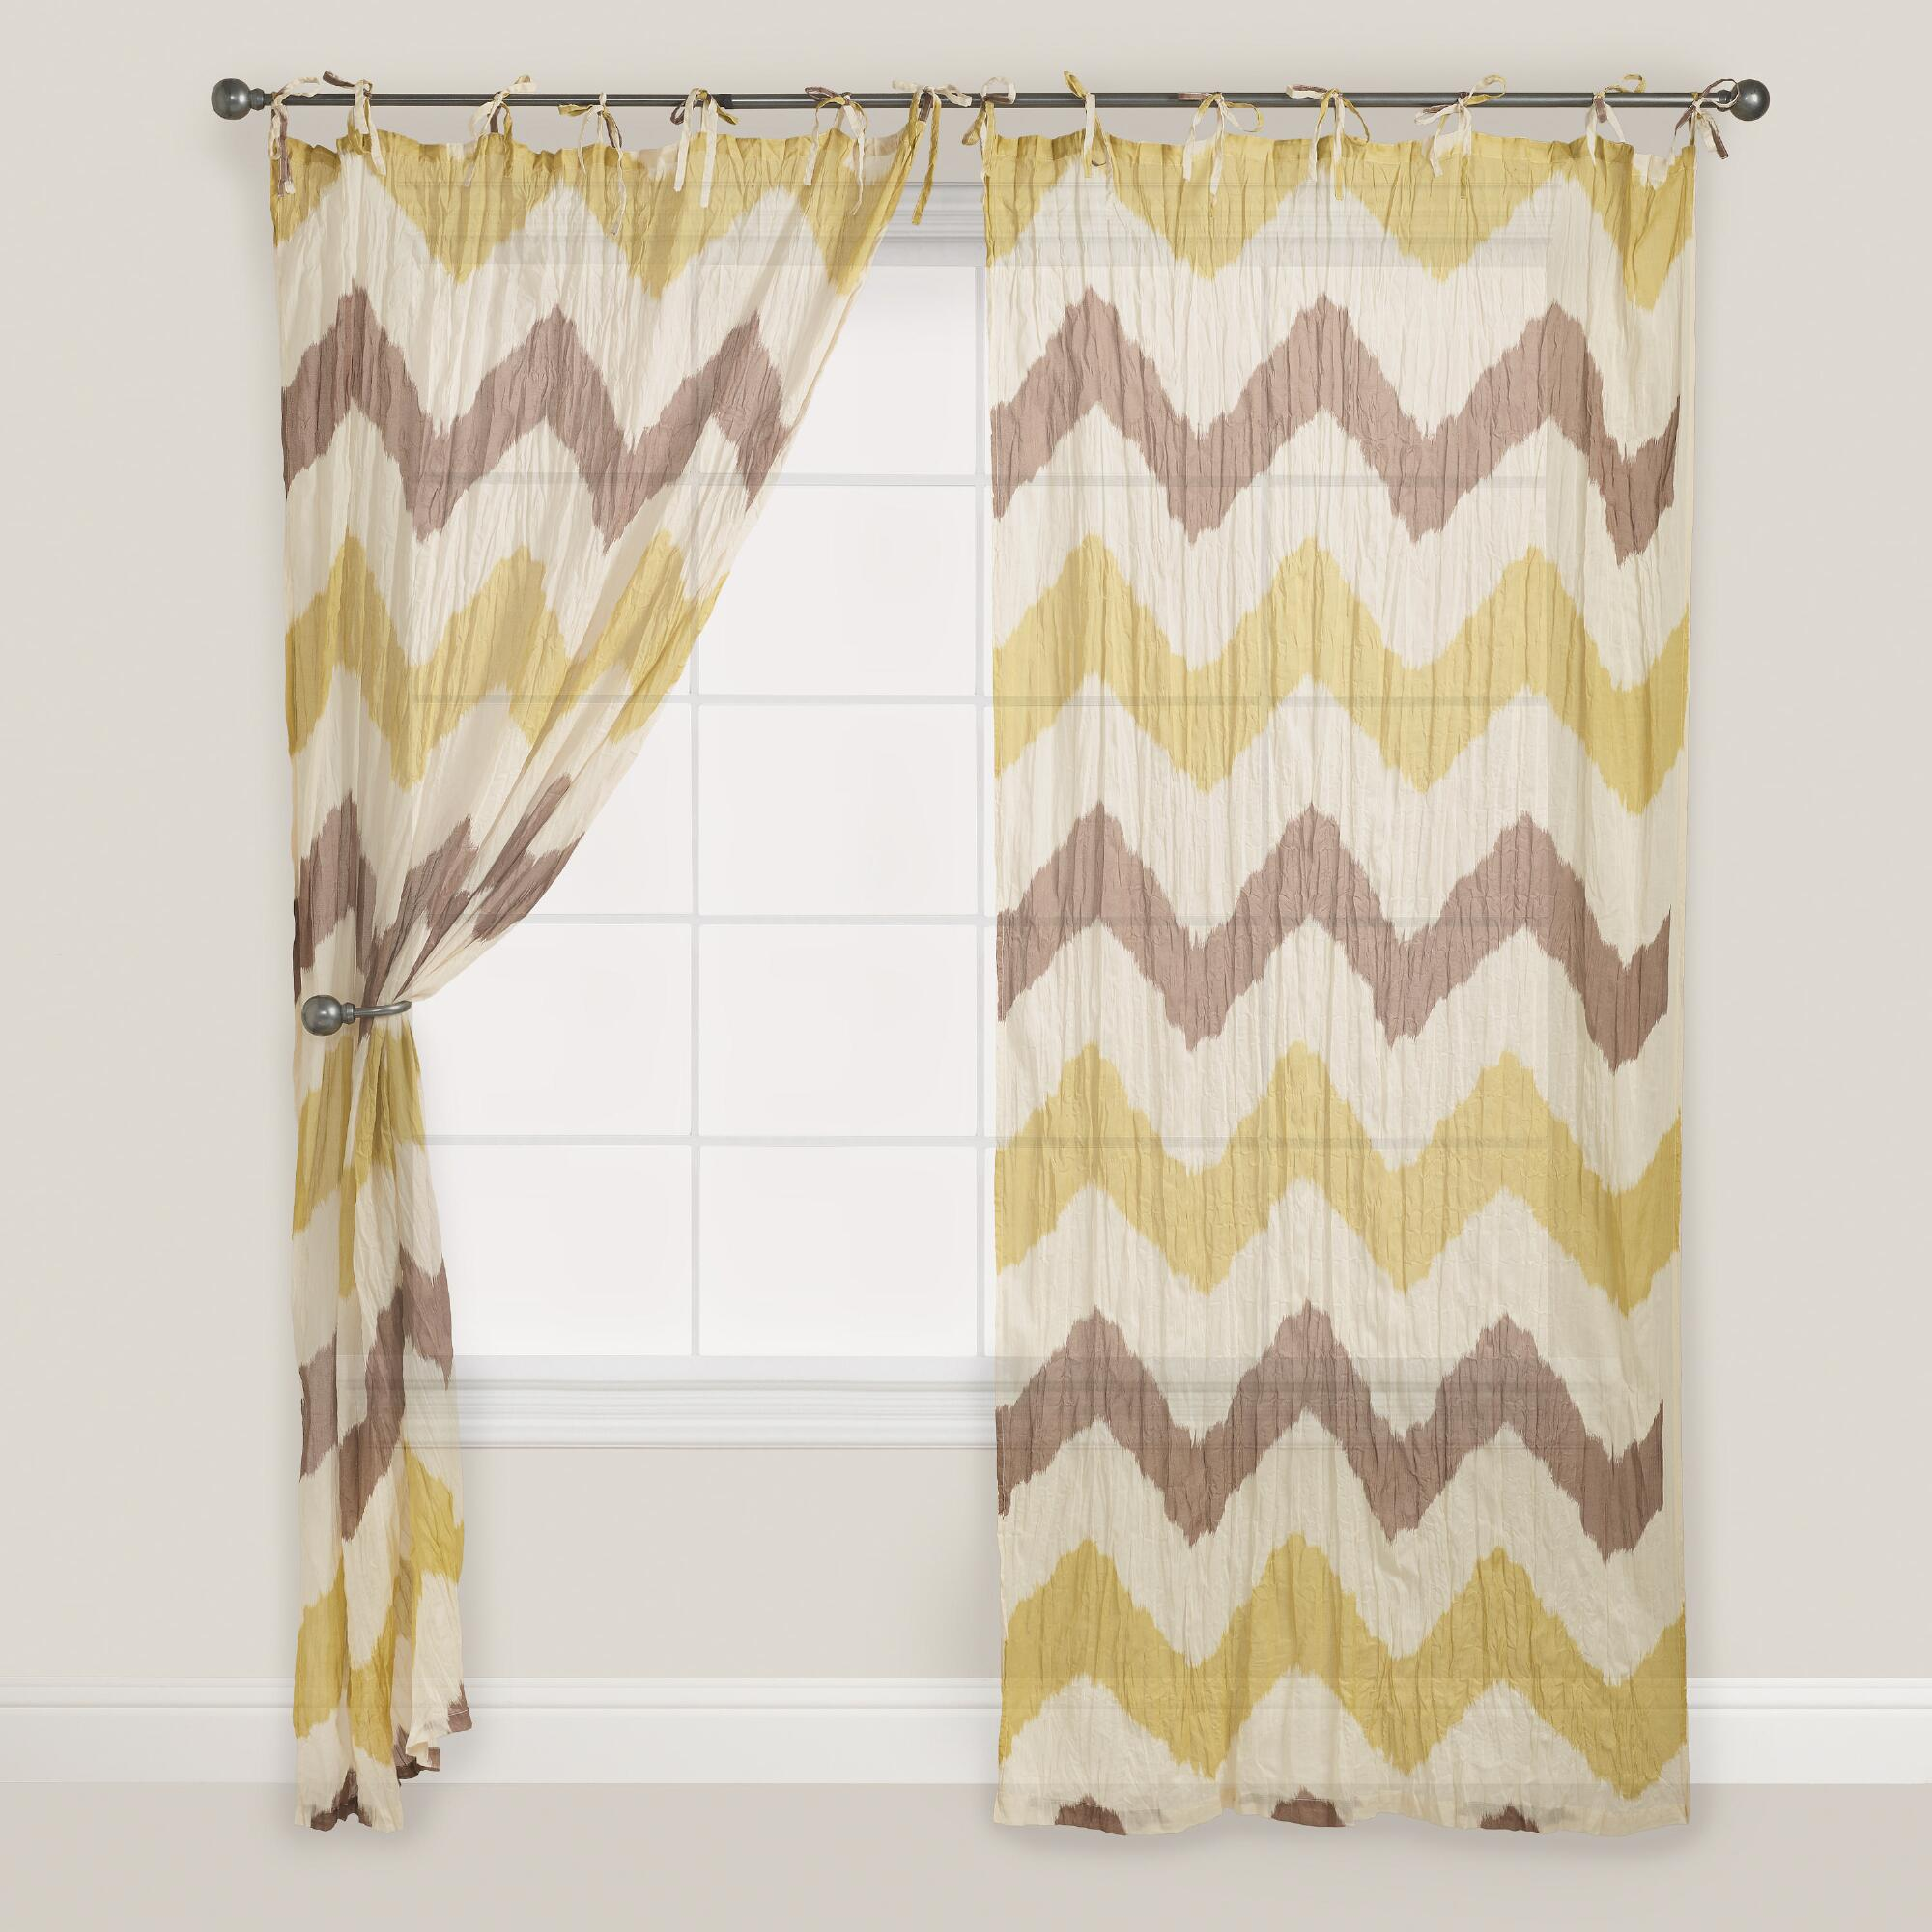 Kitchen Curtains Yellow And Gray: Chevron Crinkle Voile Curtain